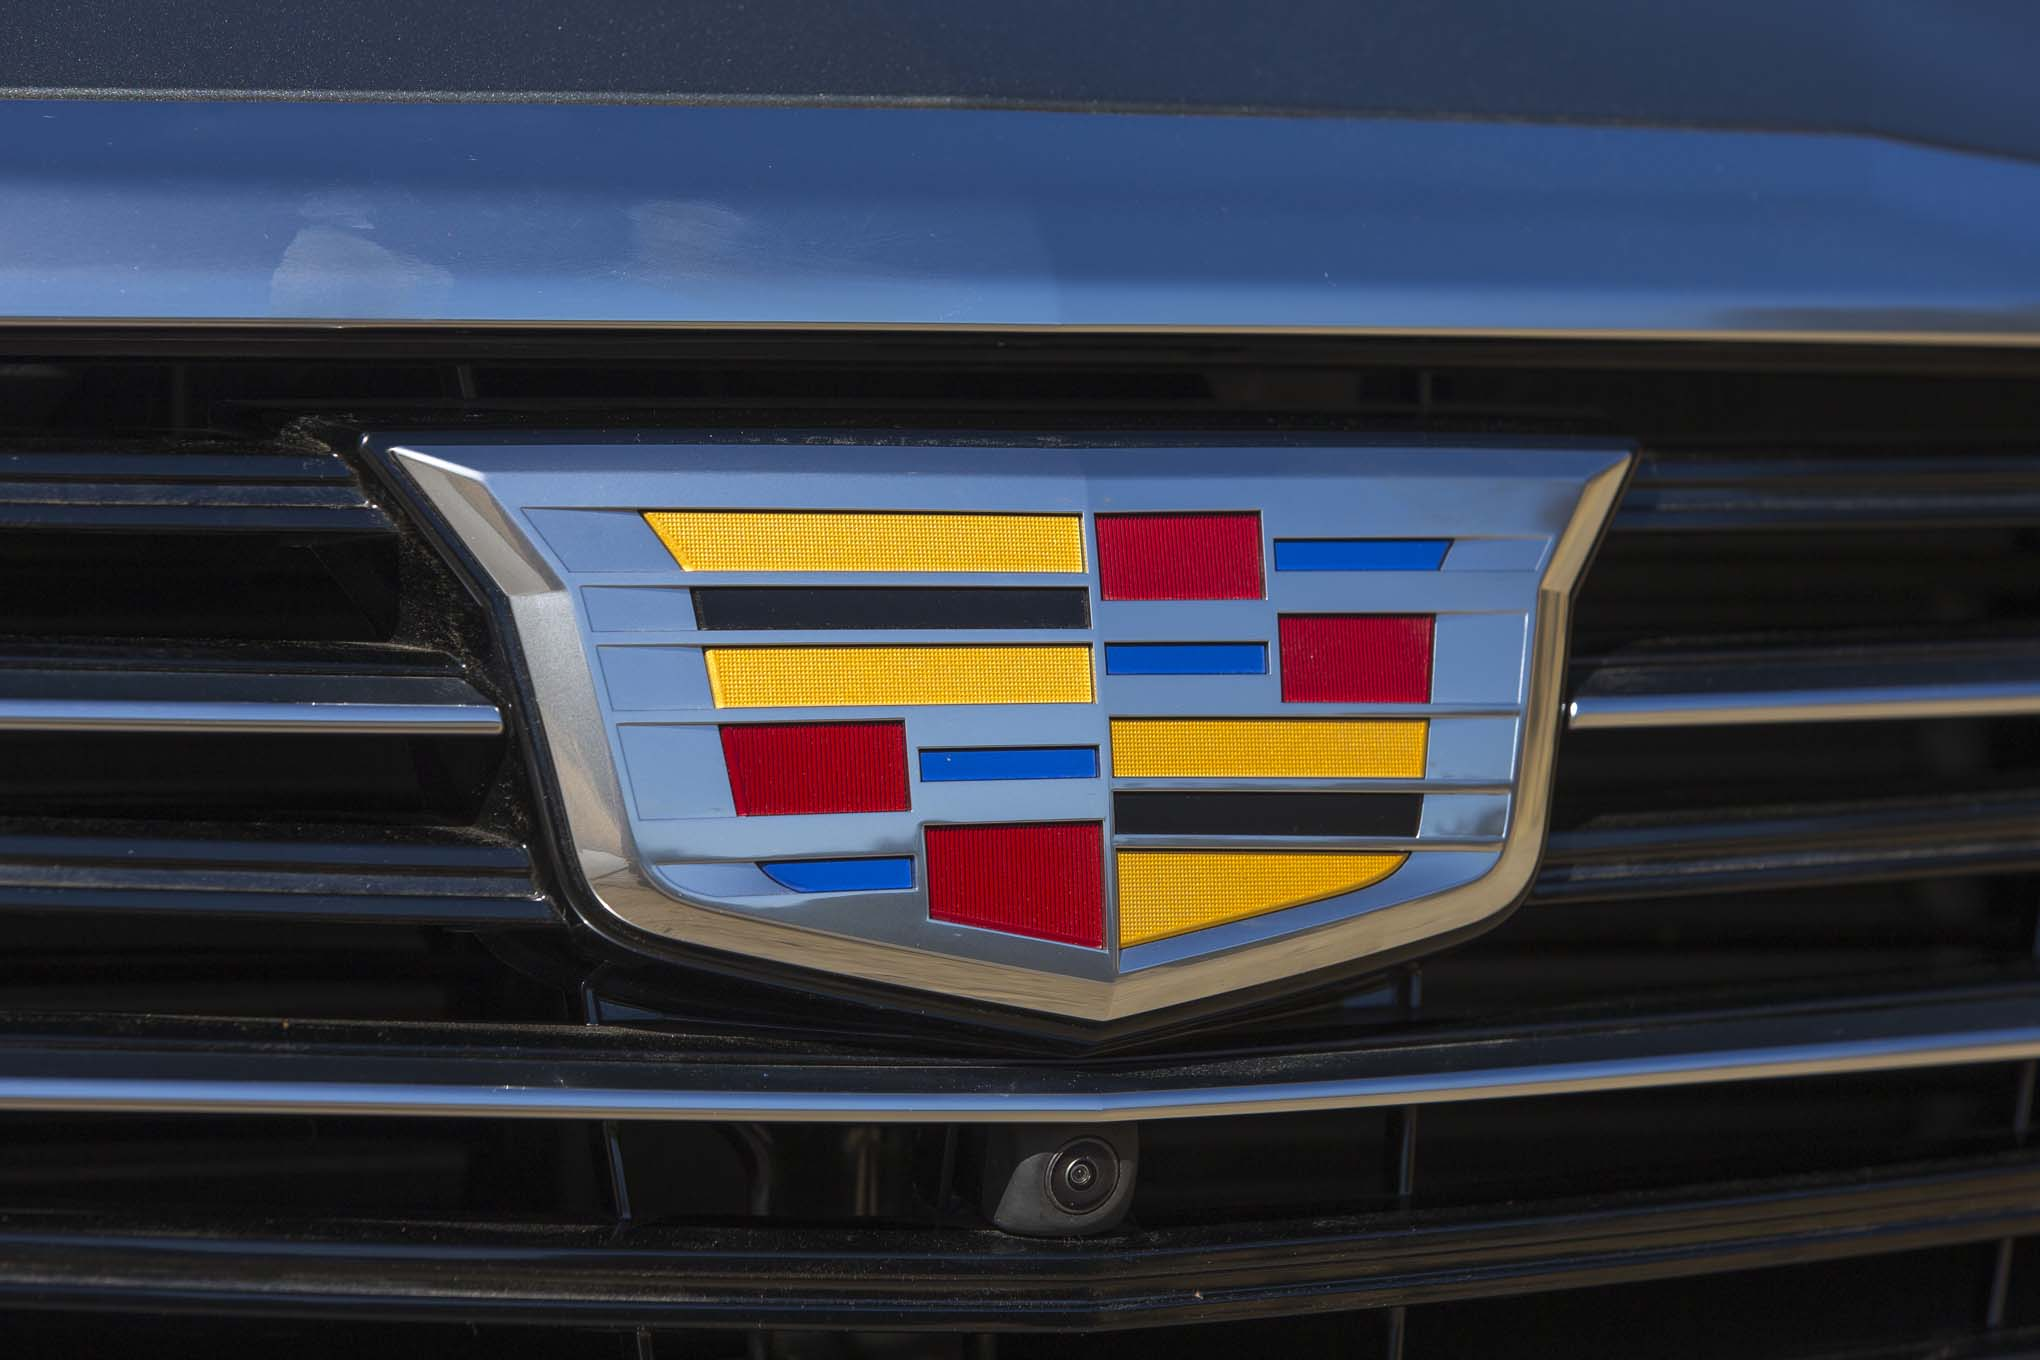 2017 Cadillac CT6 20T Front Badge